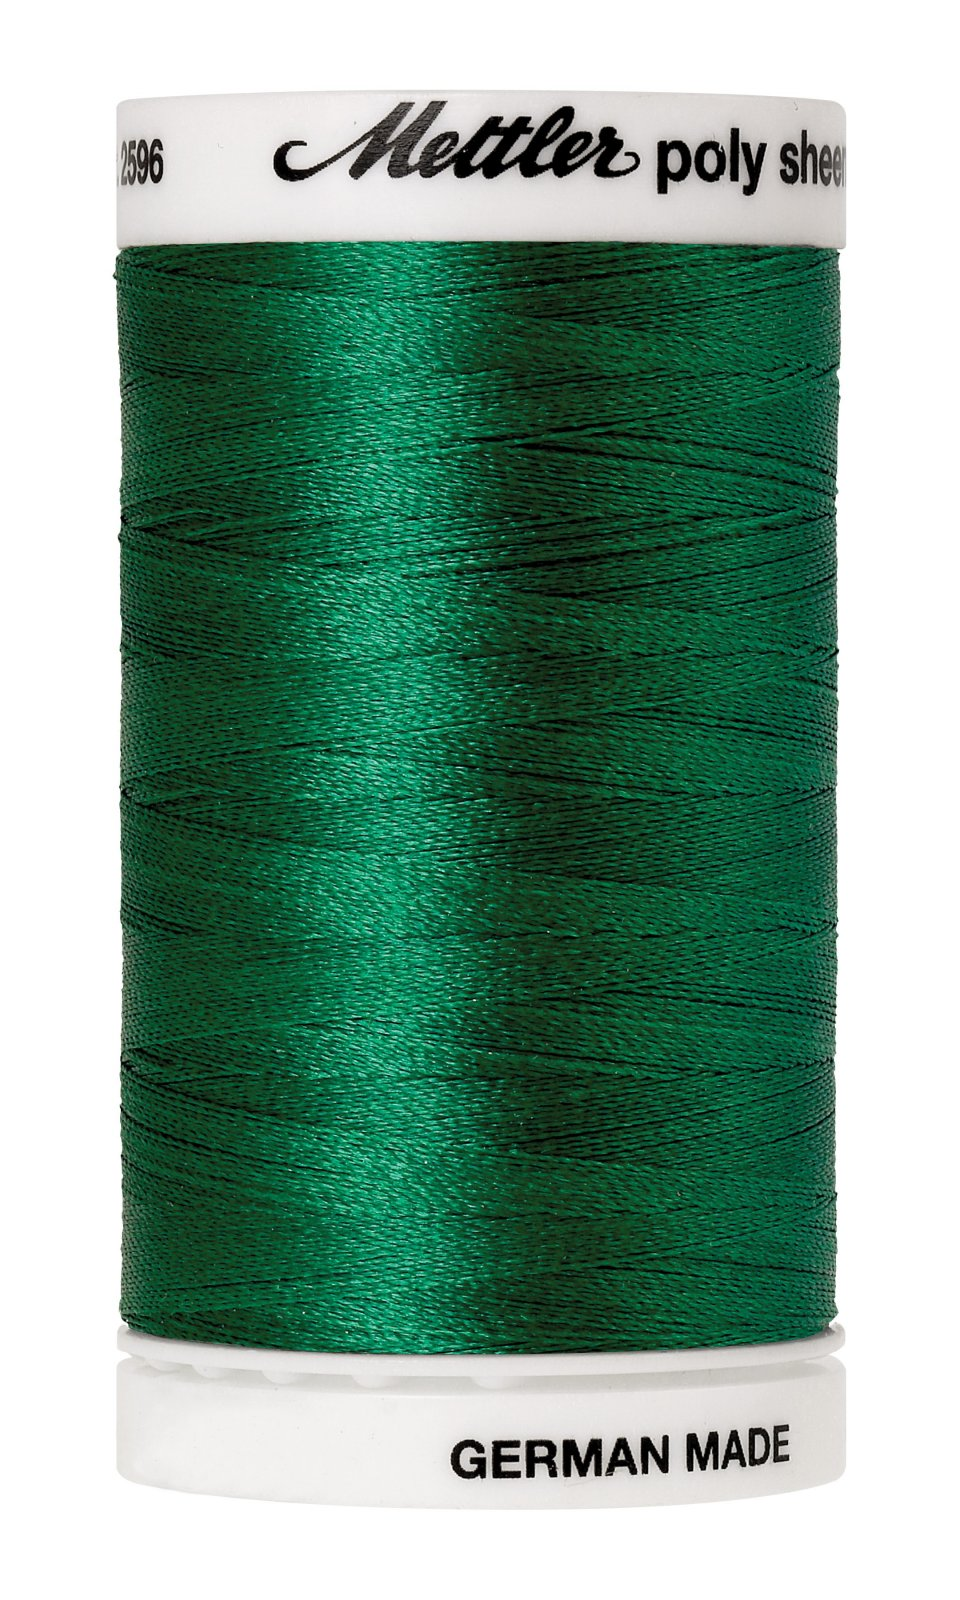 Poly Sheen Polyester Embroidery Thread 40wt 140d 800m/875yds Irish Green